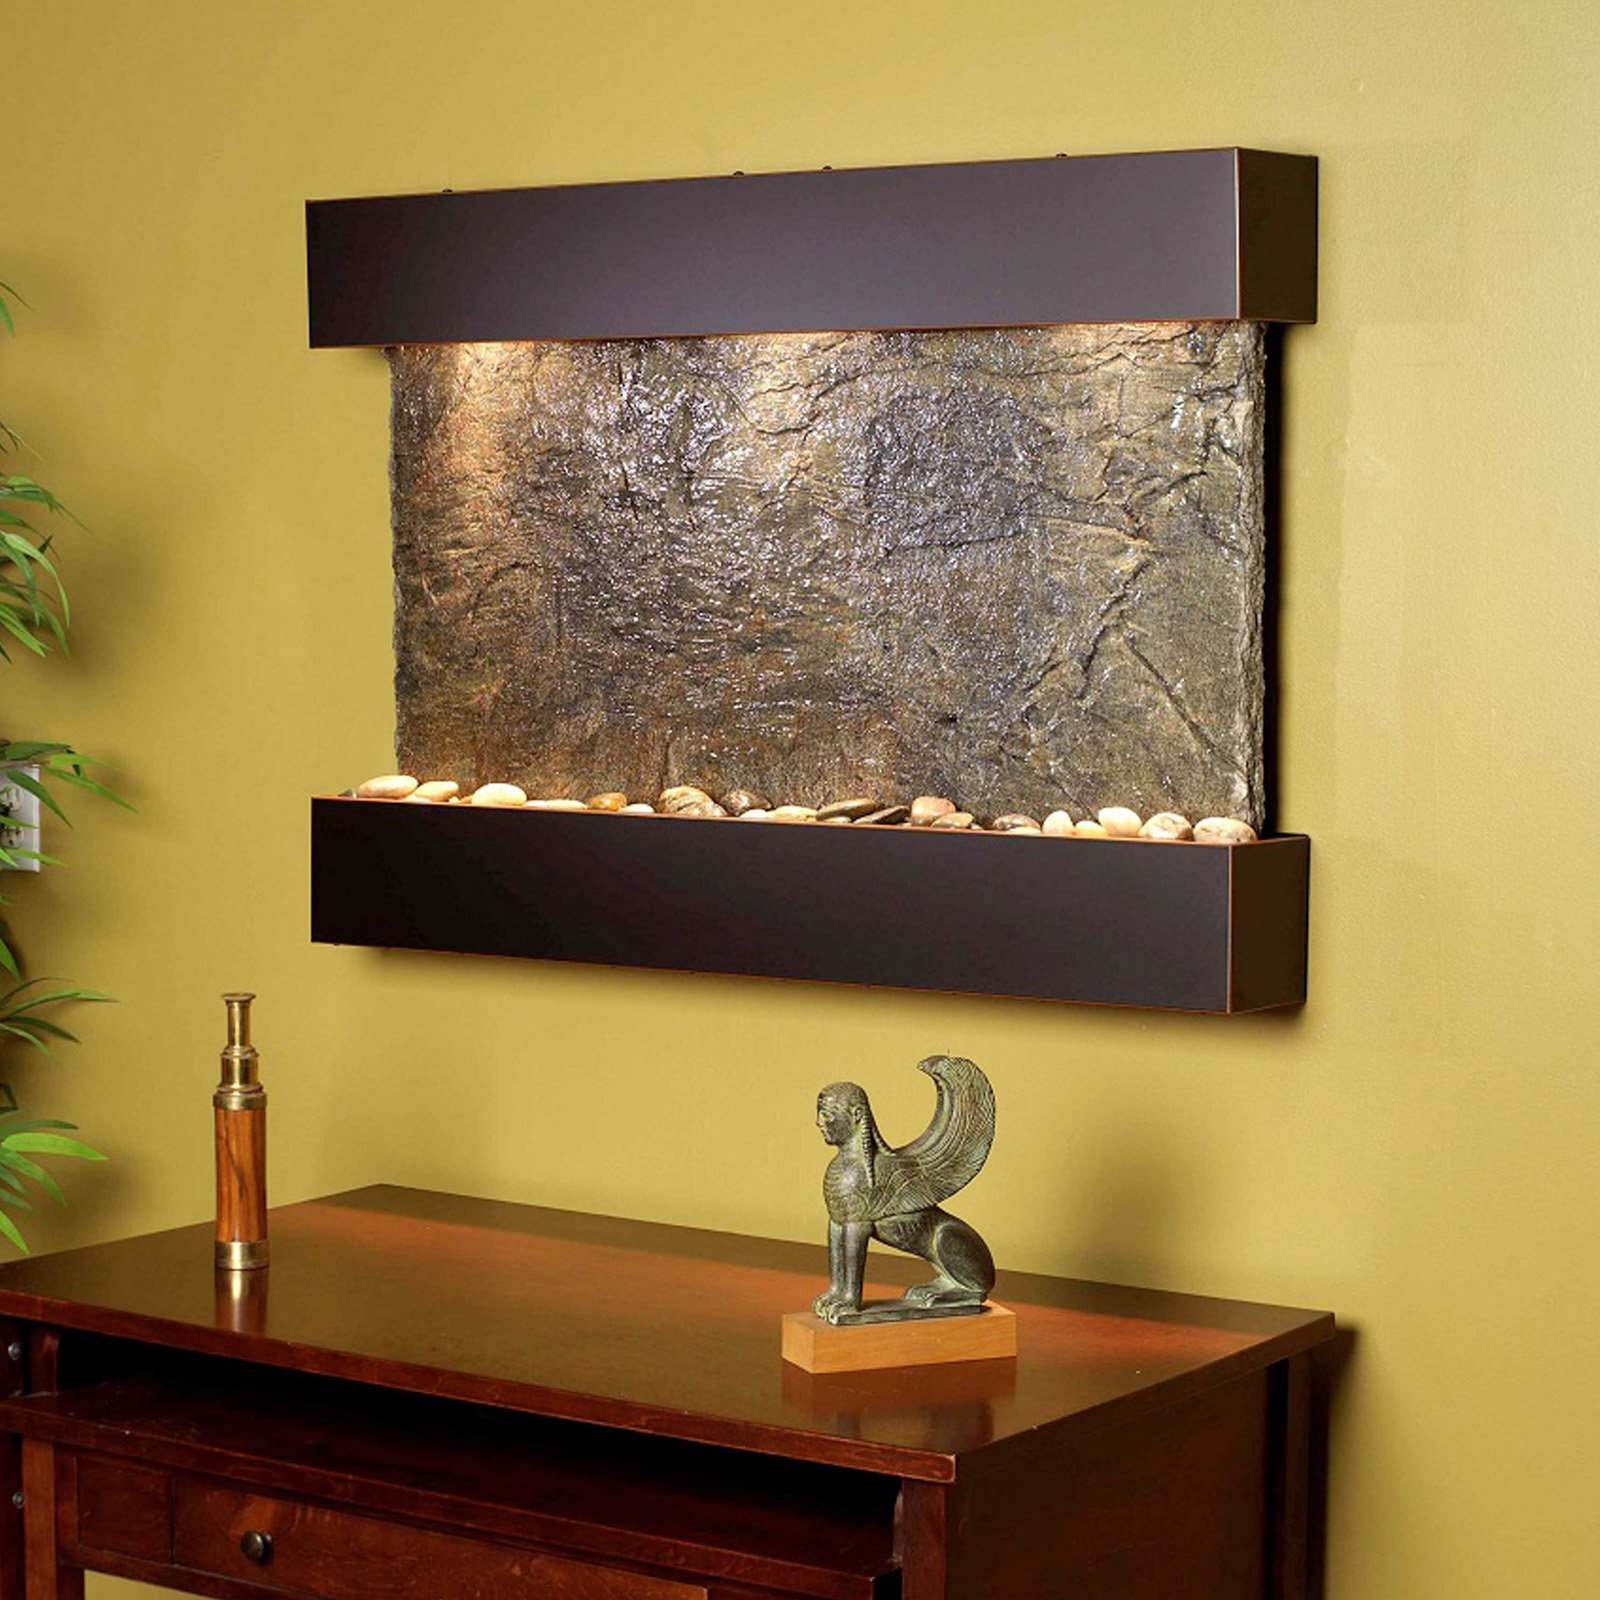 Is a Wall Fountain Right for Your Waiting Room? - Indoor Fountain Pros